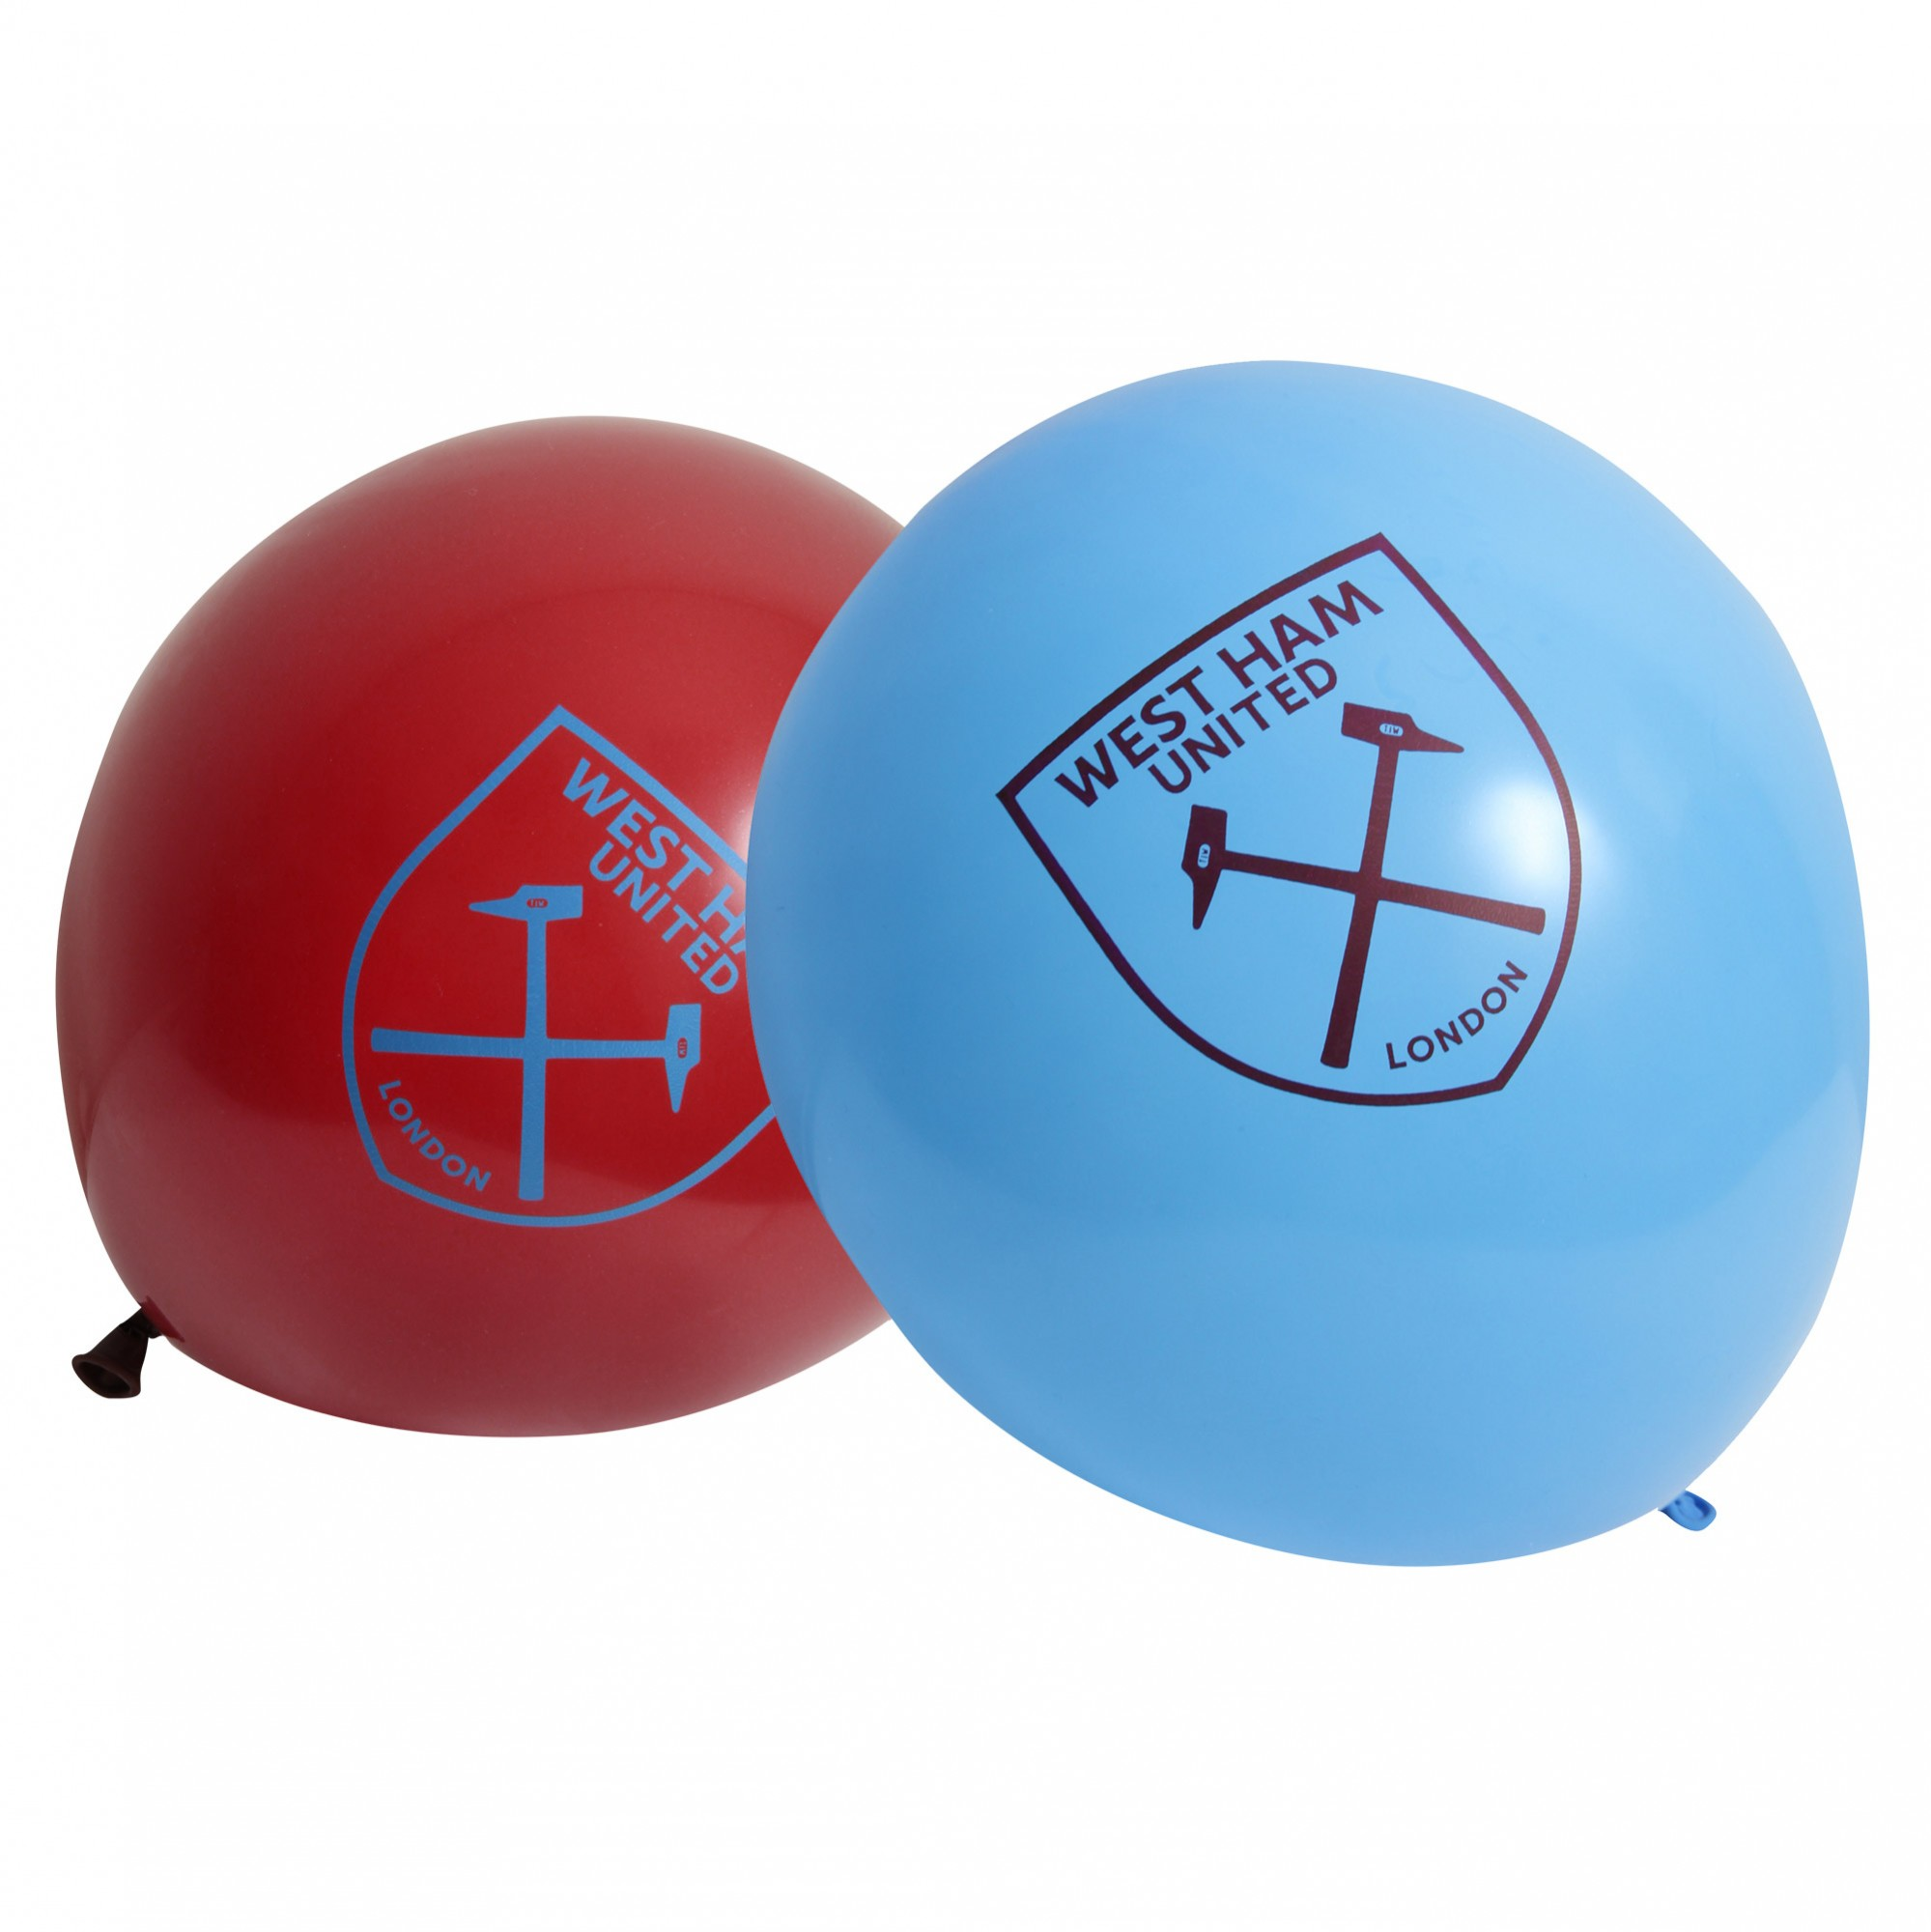 CLARET AND BLUE BALLOONS